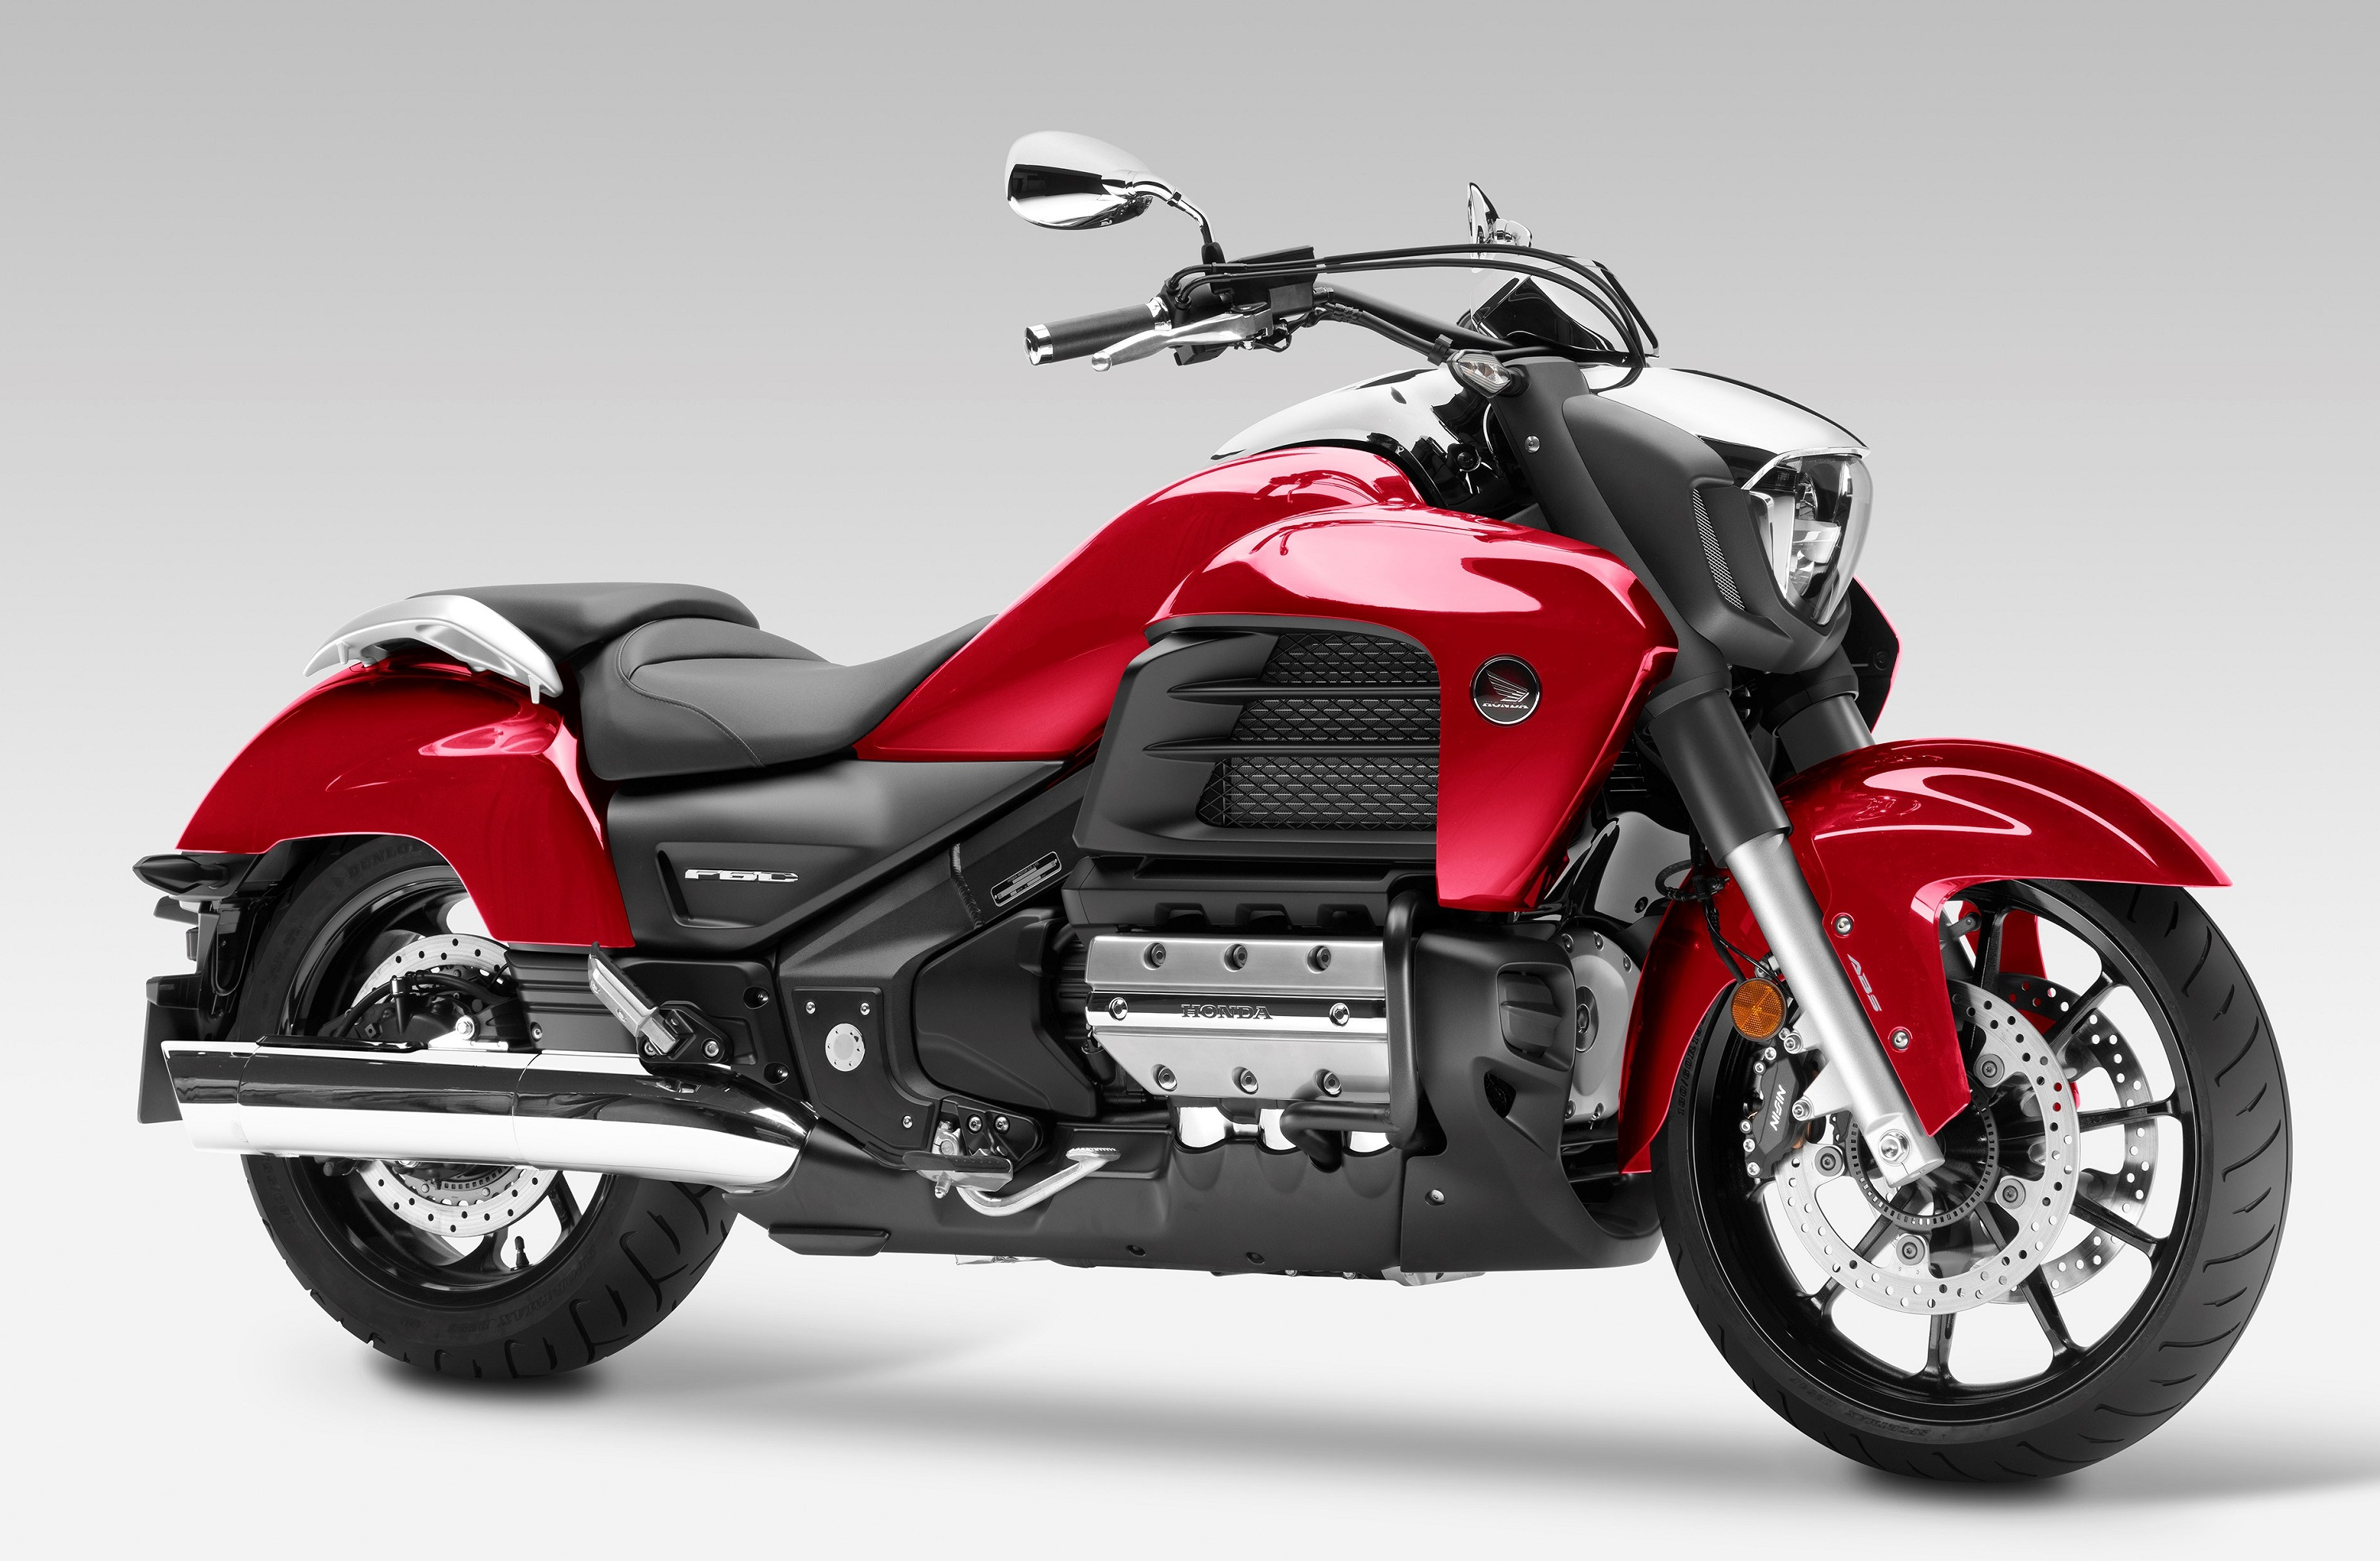 For Sale Honda Valkyrie F6c The Bike Market